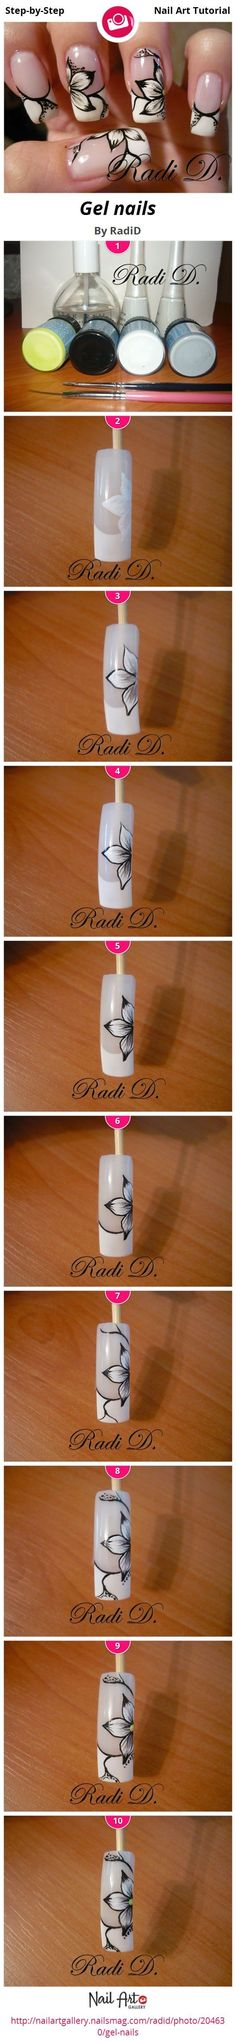 awesome Gel nails by RadiD from Nail Art Gallery